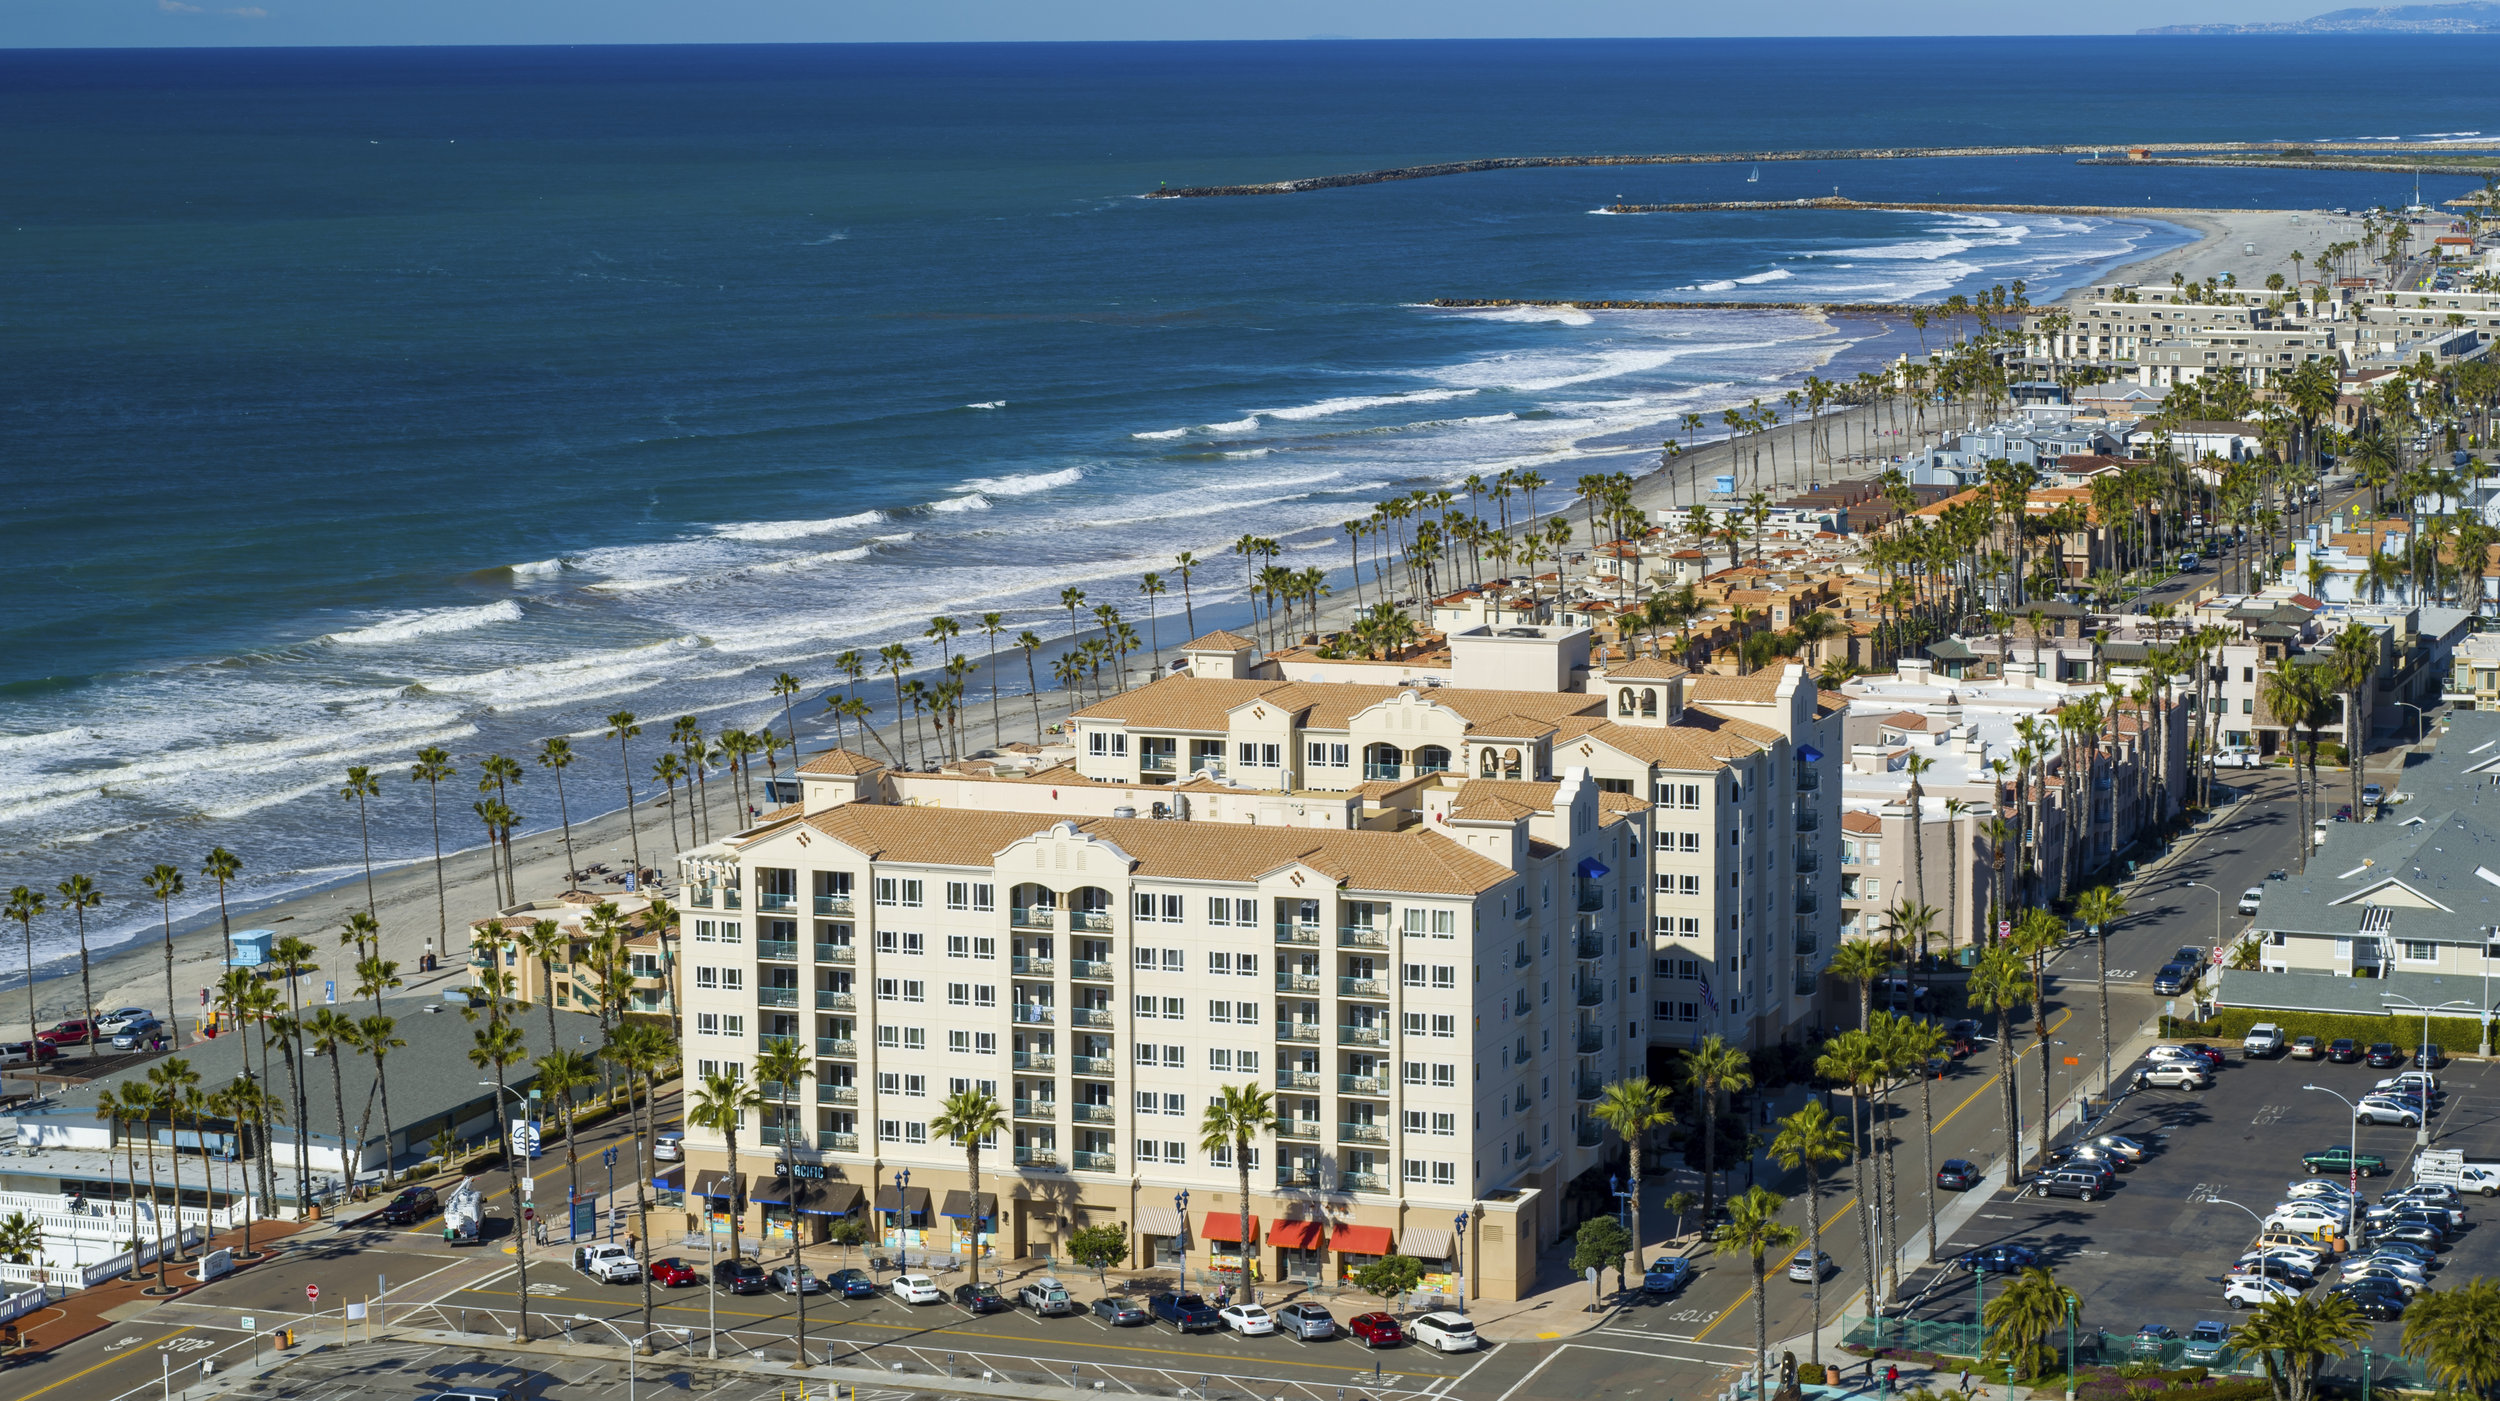 Oceanside - Beach paradise never looked so good!